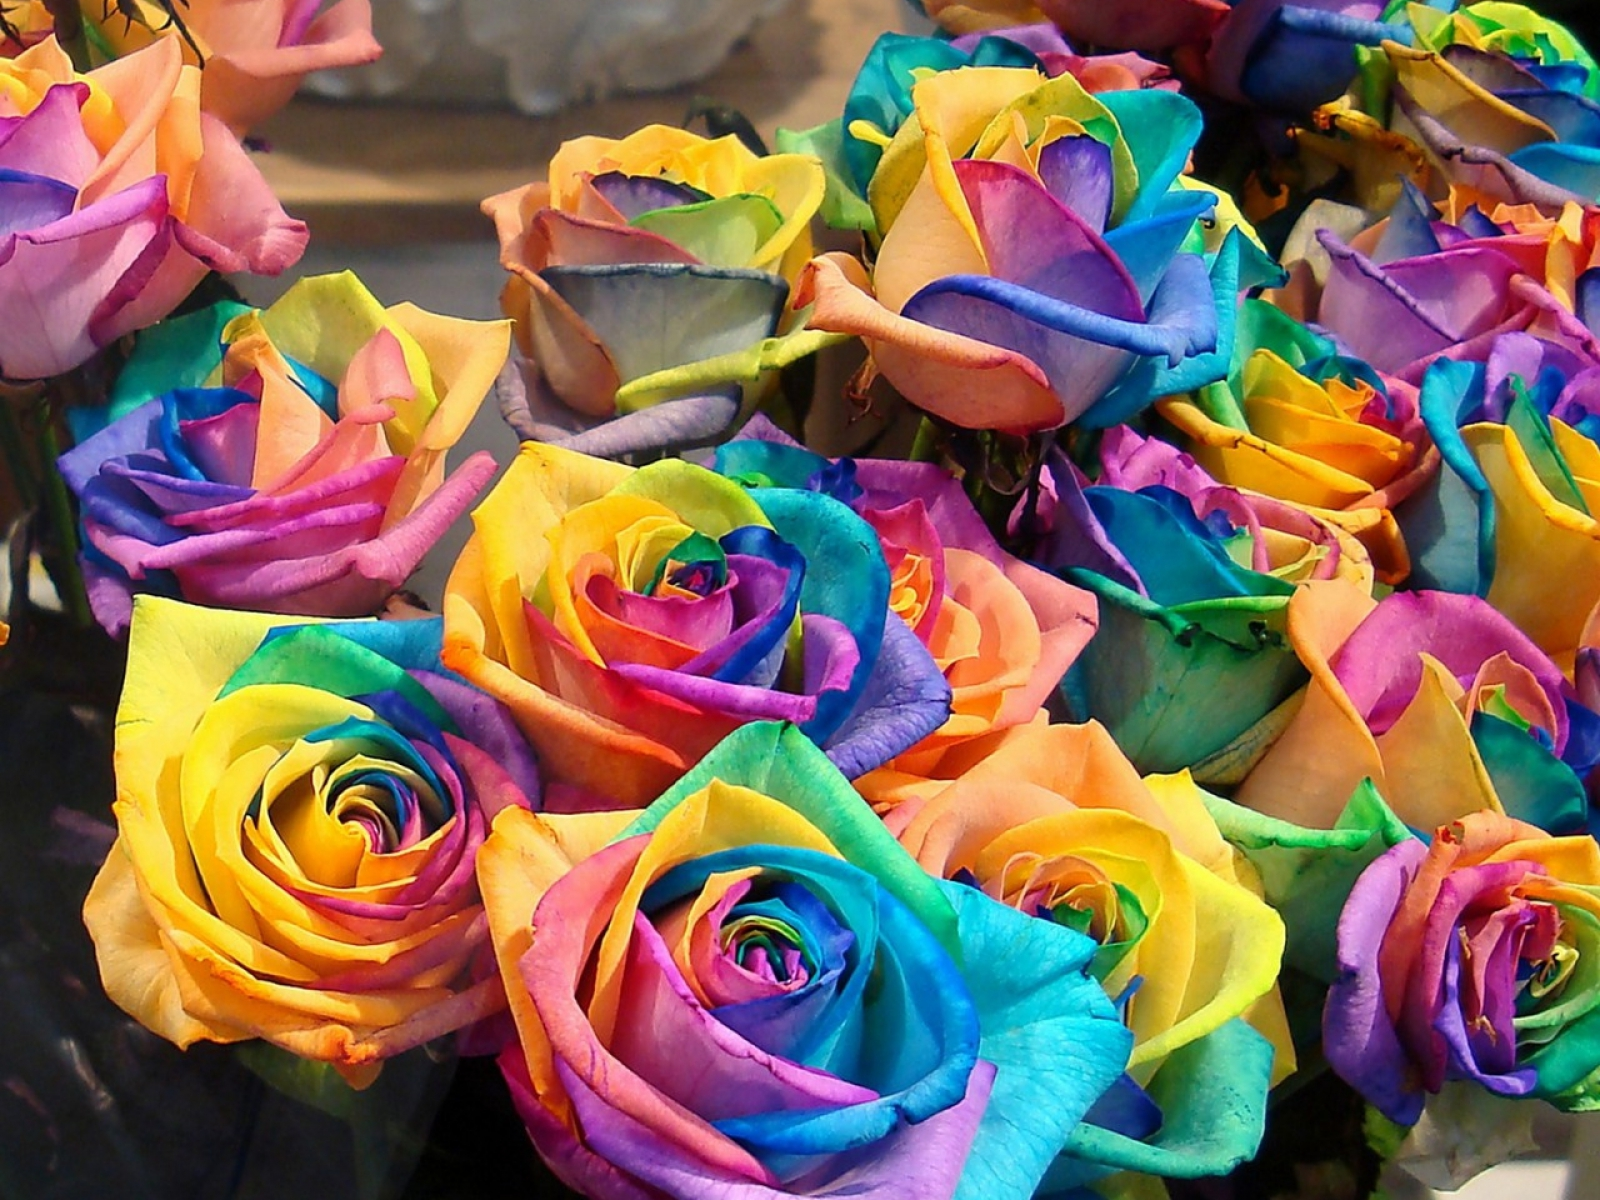 JUST HD WALLPAPERS: Colourful Rose Flower Wallpapers